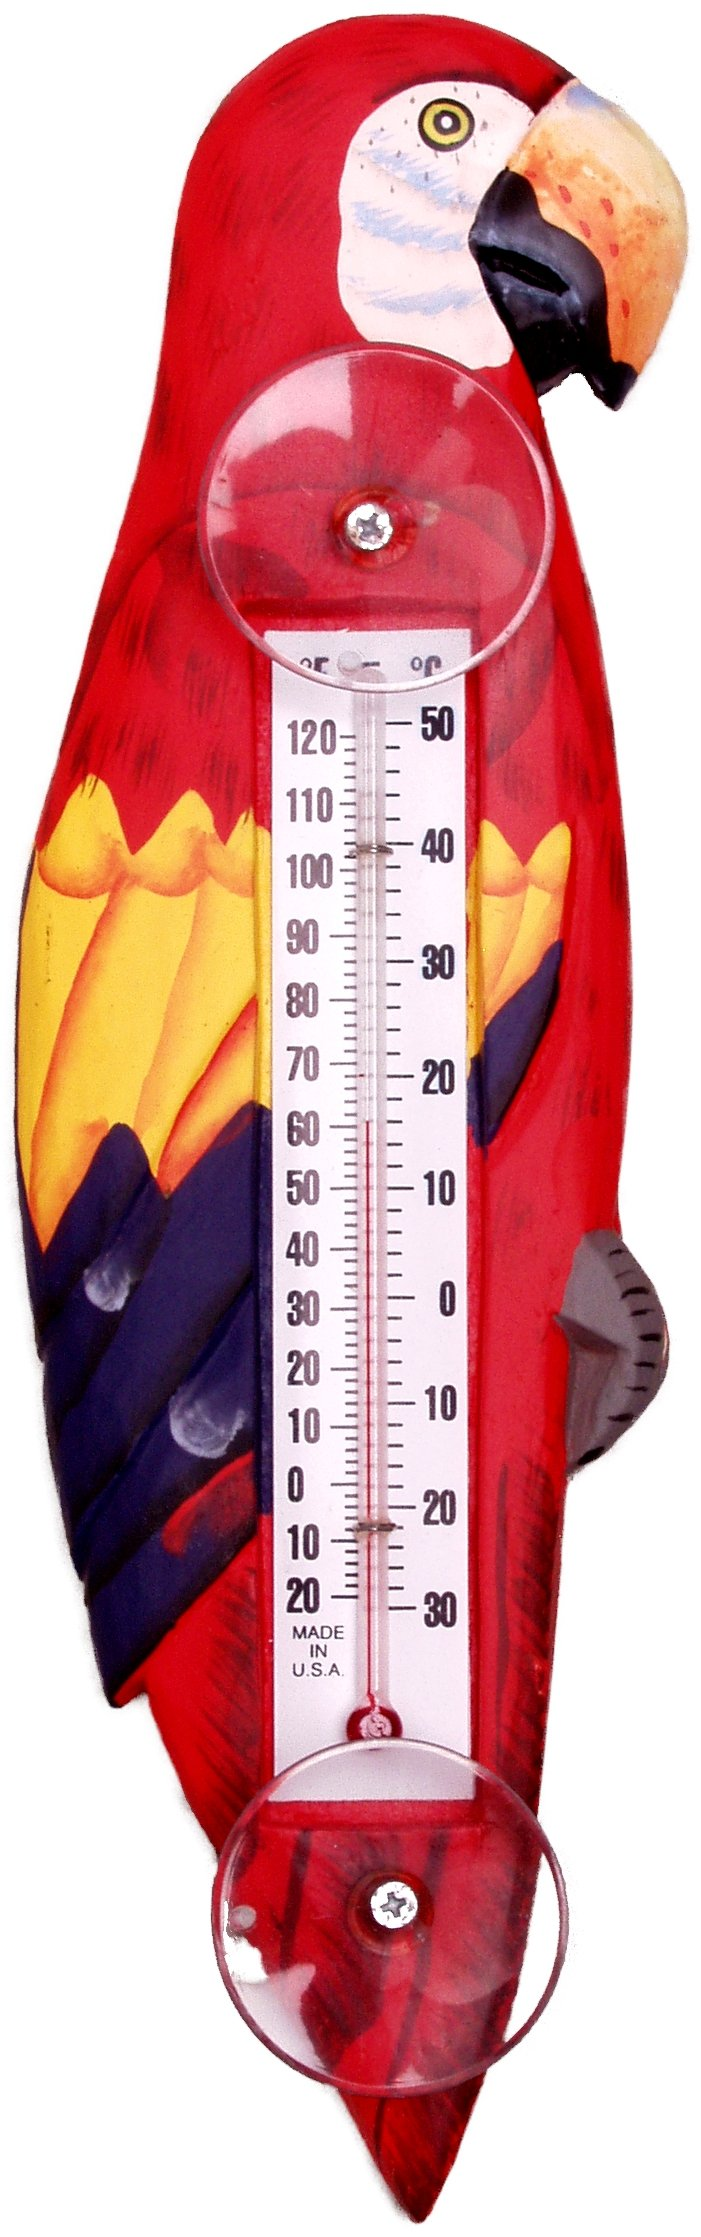 Songbird Essentials Red Parrot Large Window Thermometer